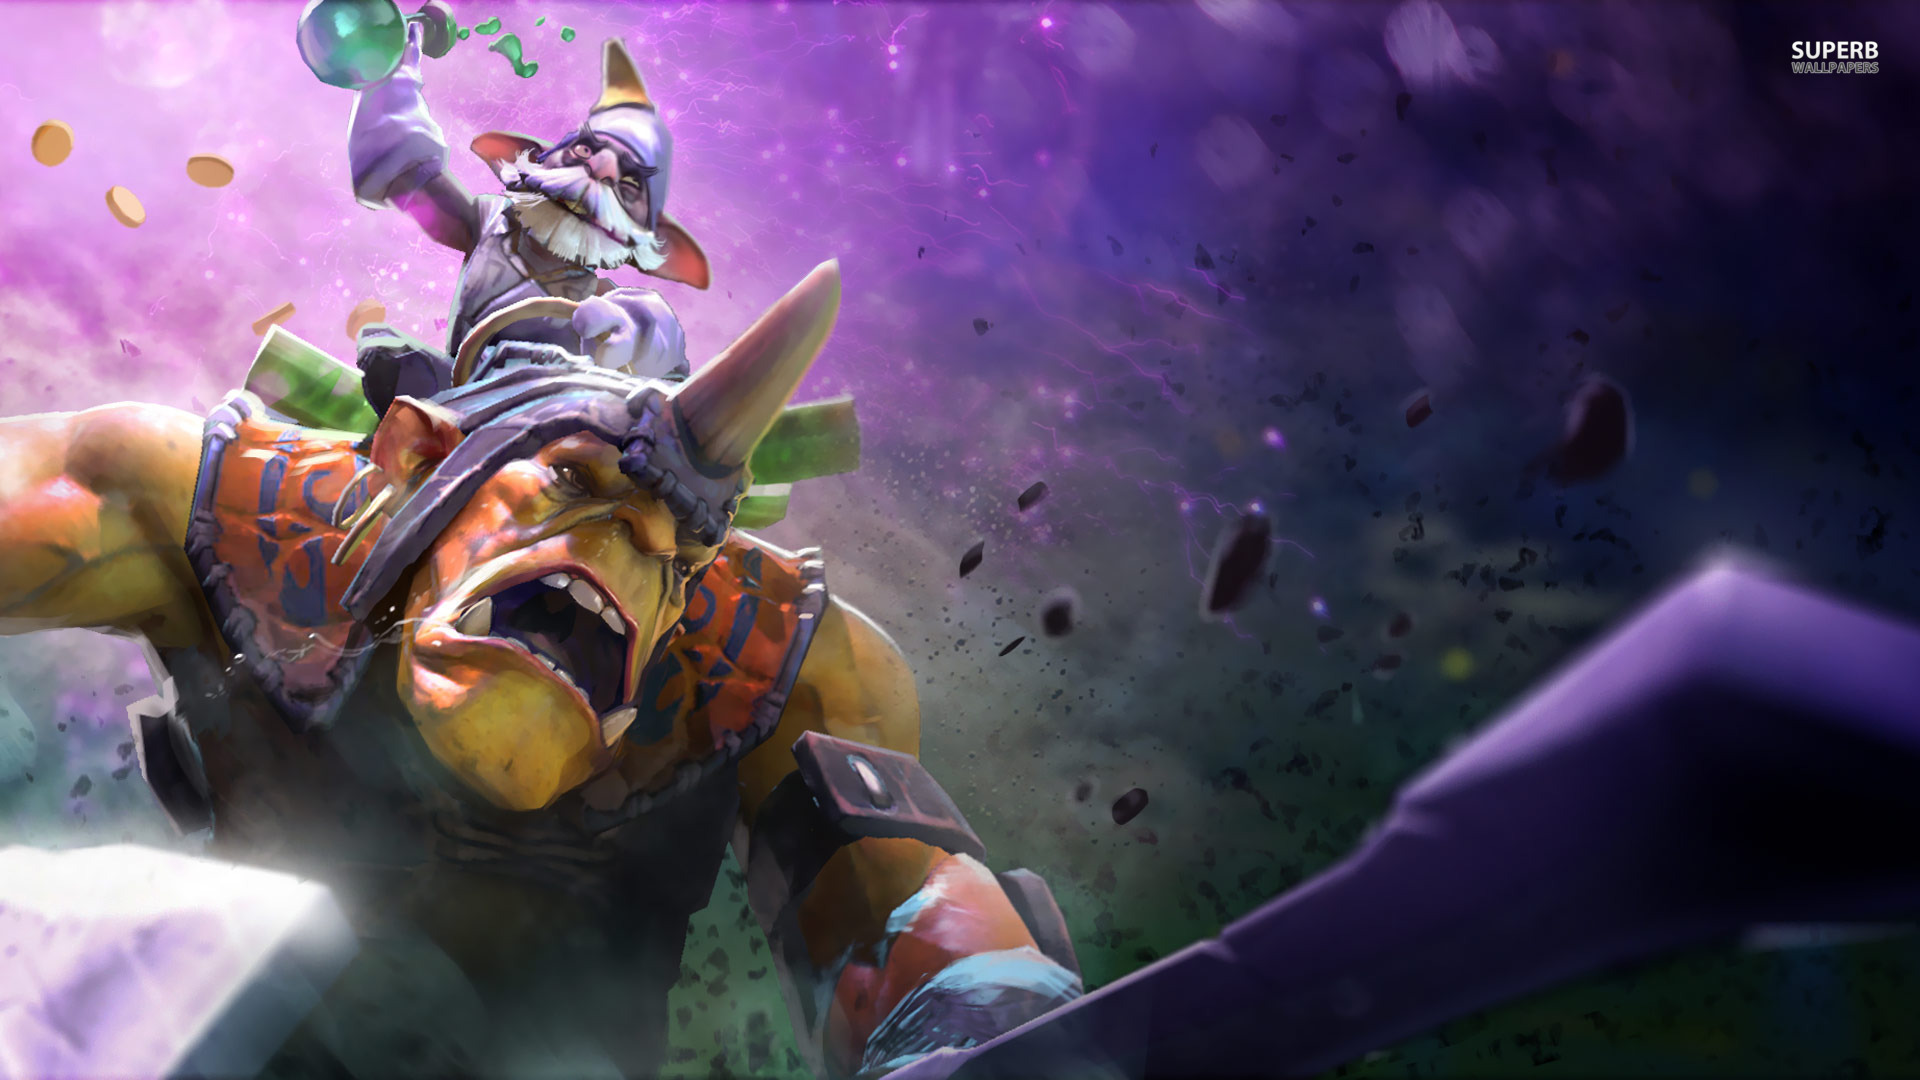 Dota : Techies HD Desktop Wallpapers  wallpapers  images about DotA  Wallpapers on Pinterest  Strength, Ymir 1920x1080